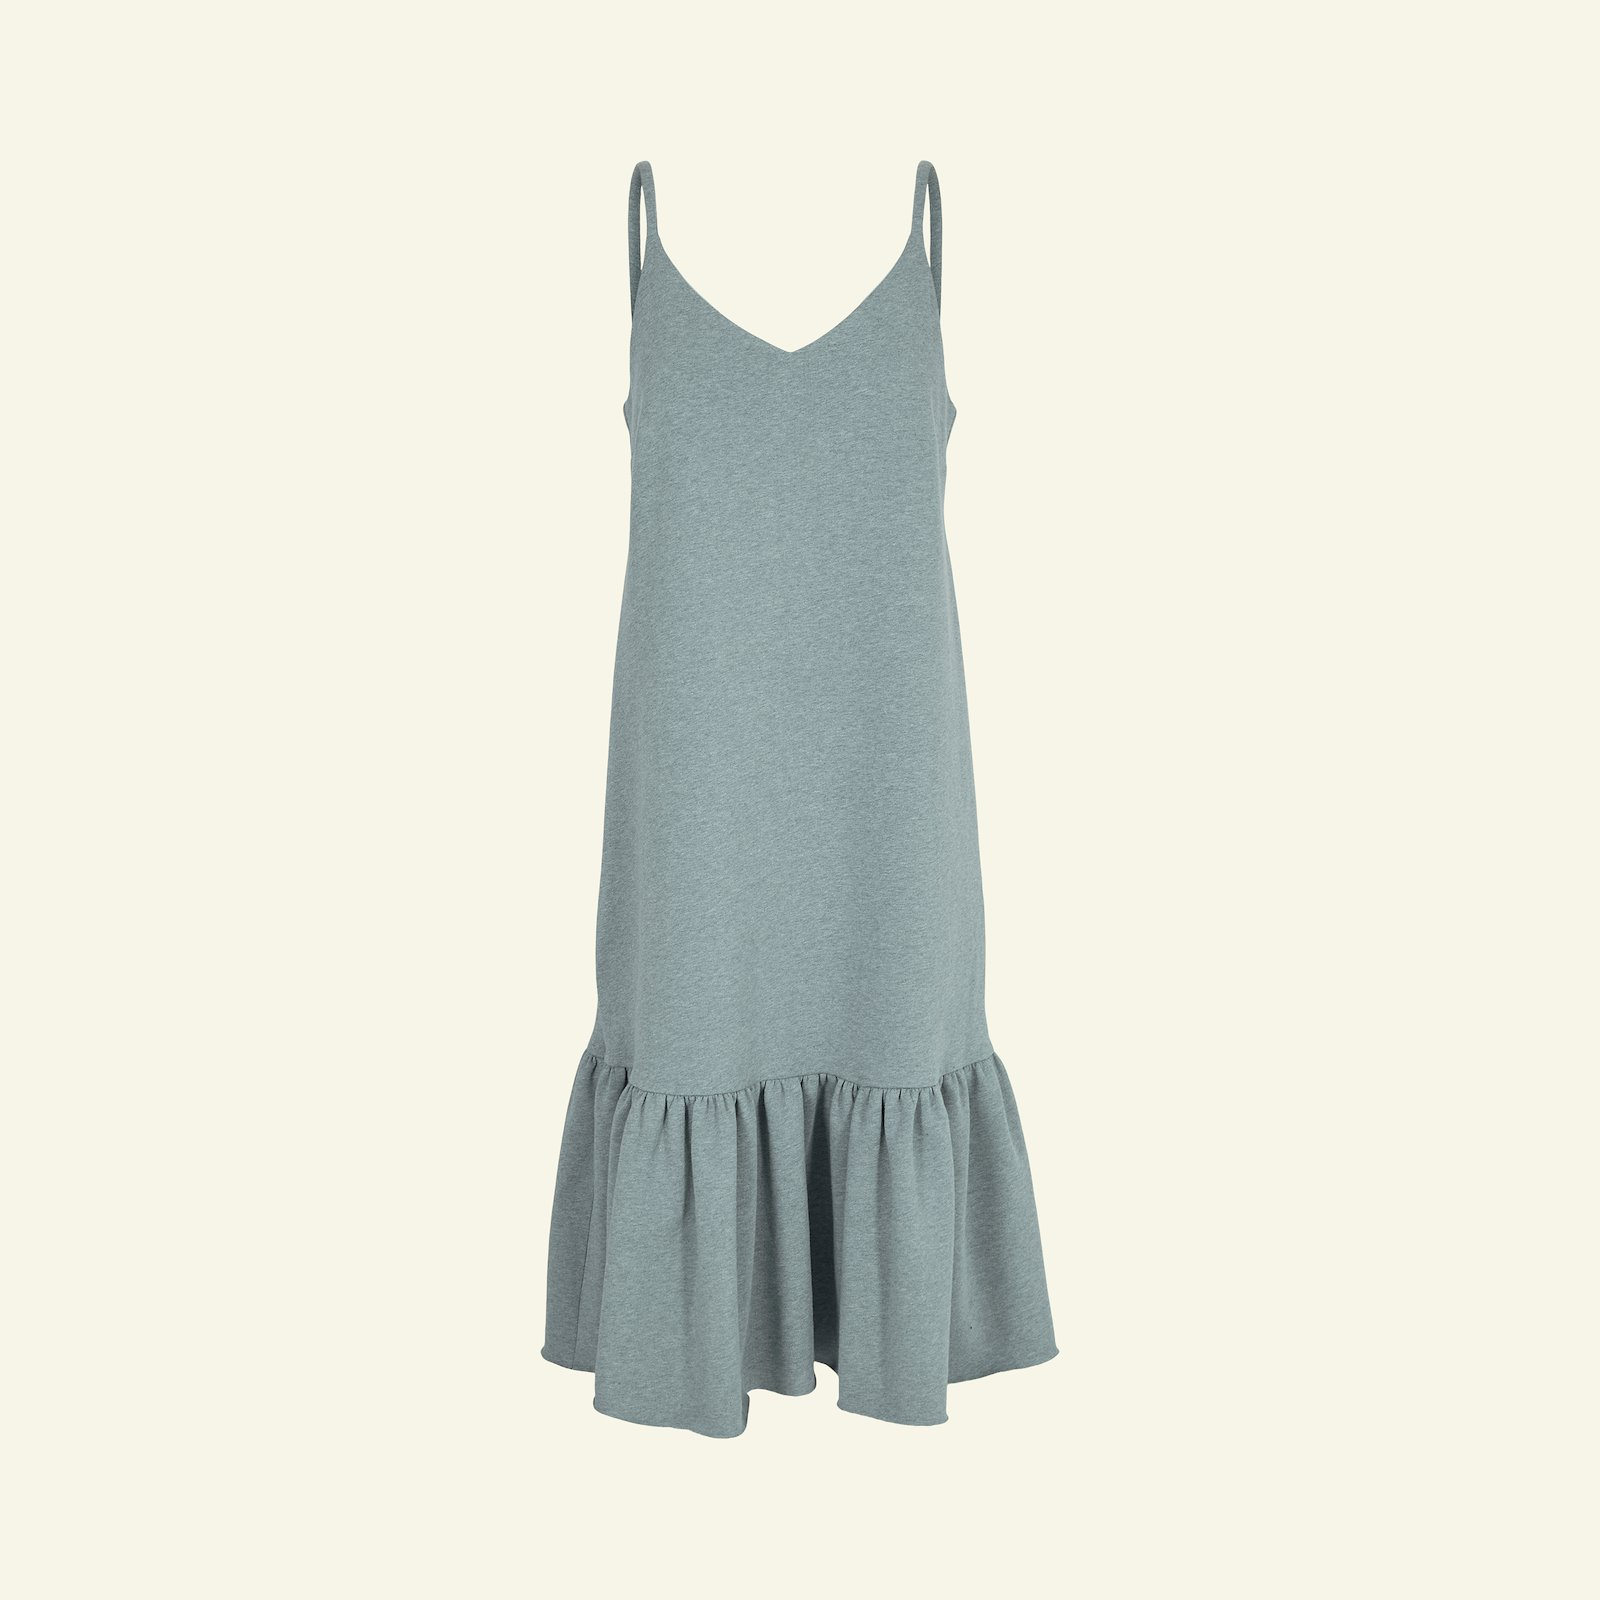 Strap dress and top, 44/16 p23146_211764_sskit